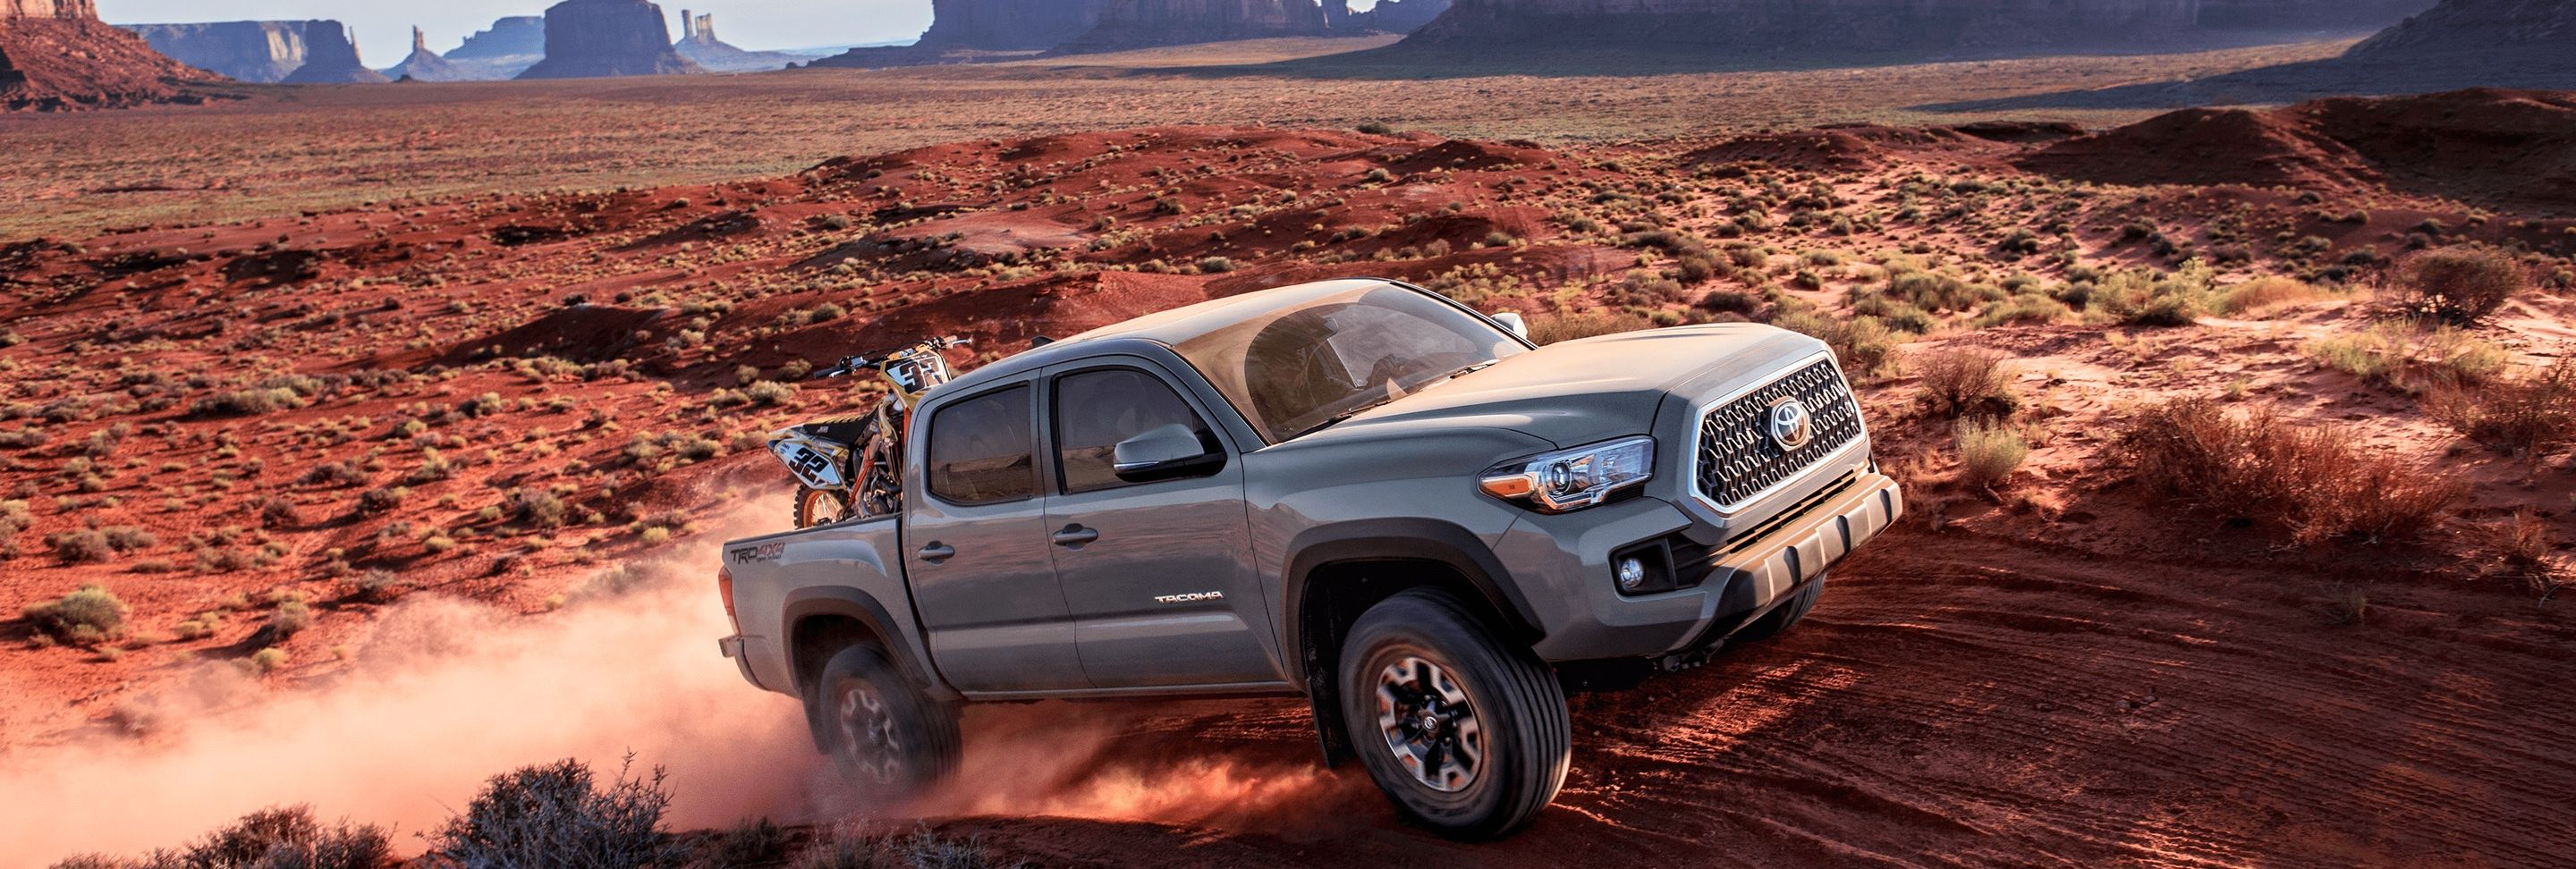 2019 Toyota Tacoma for Sale near Beloit, WI